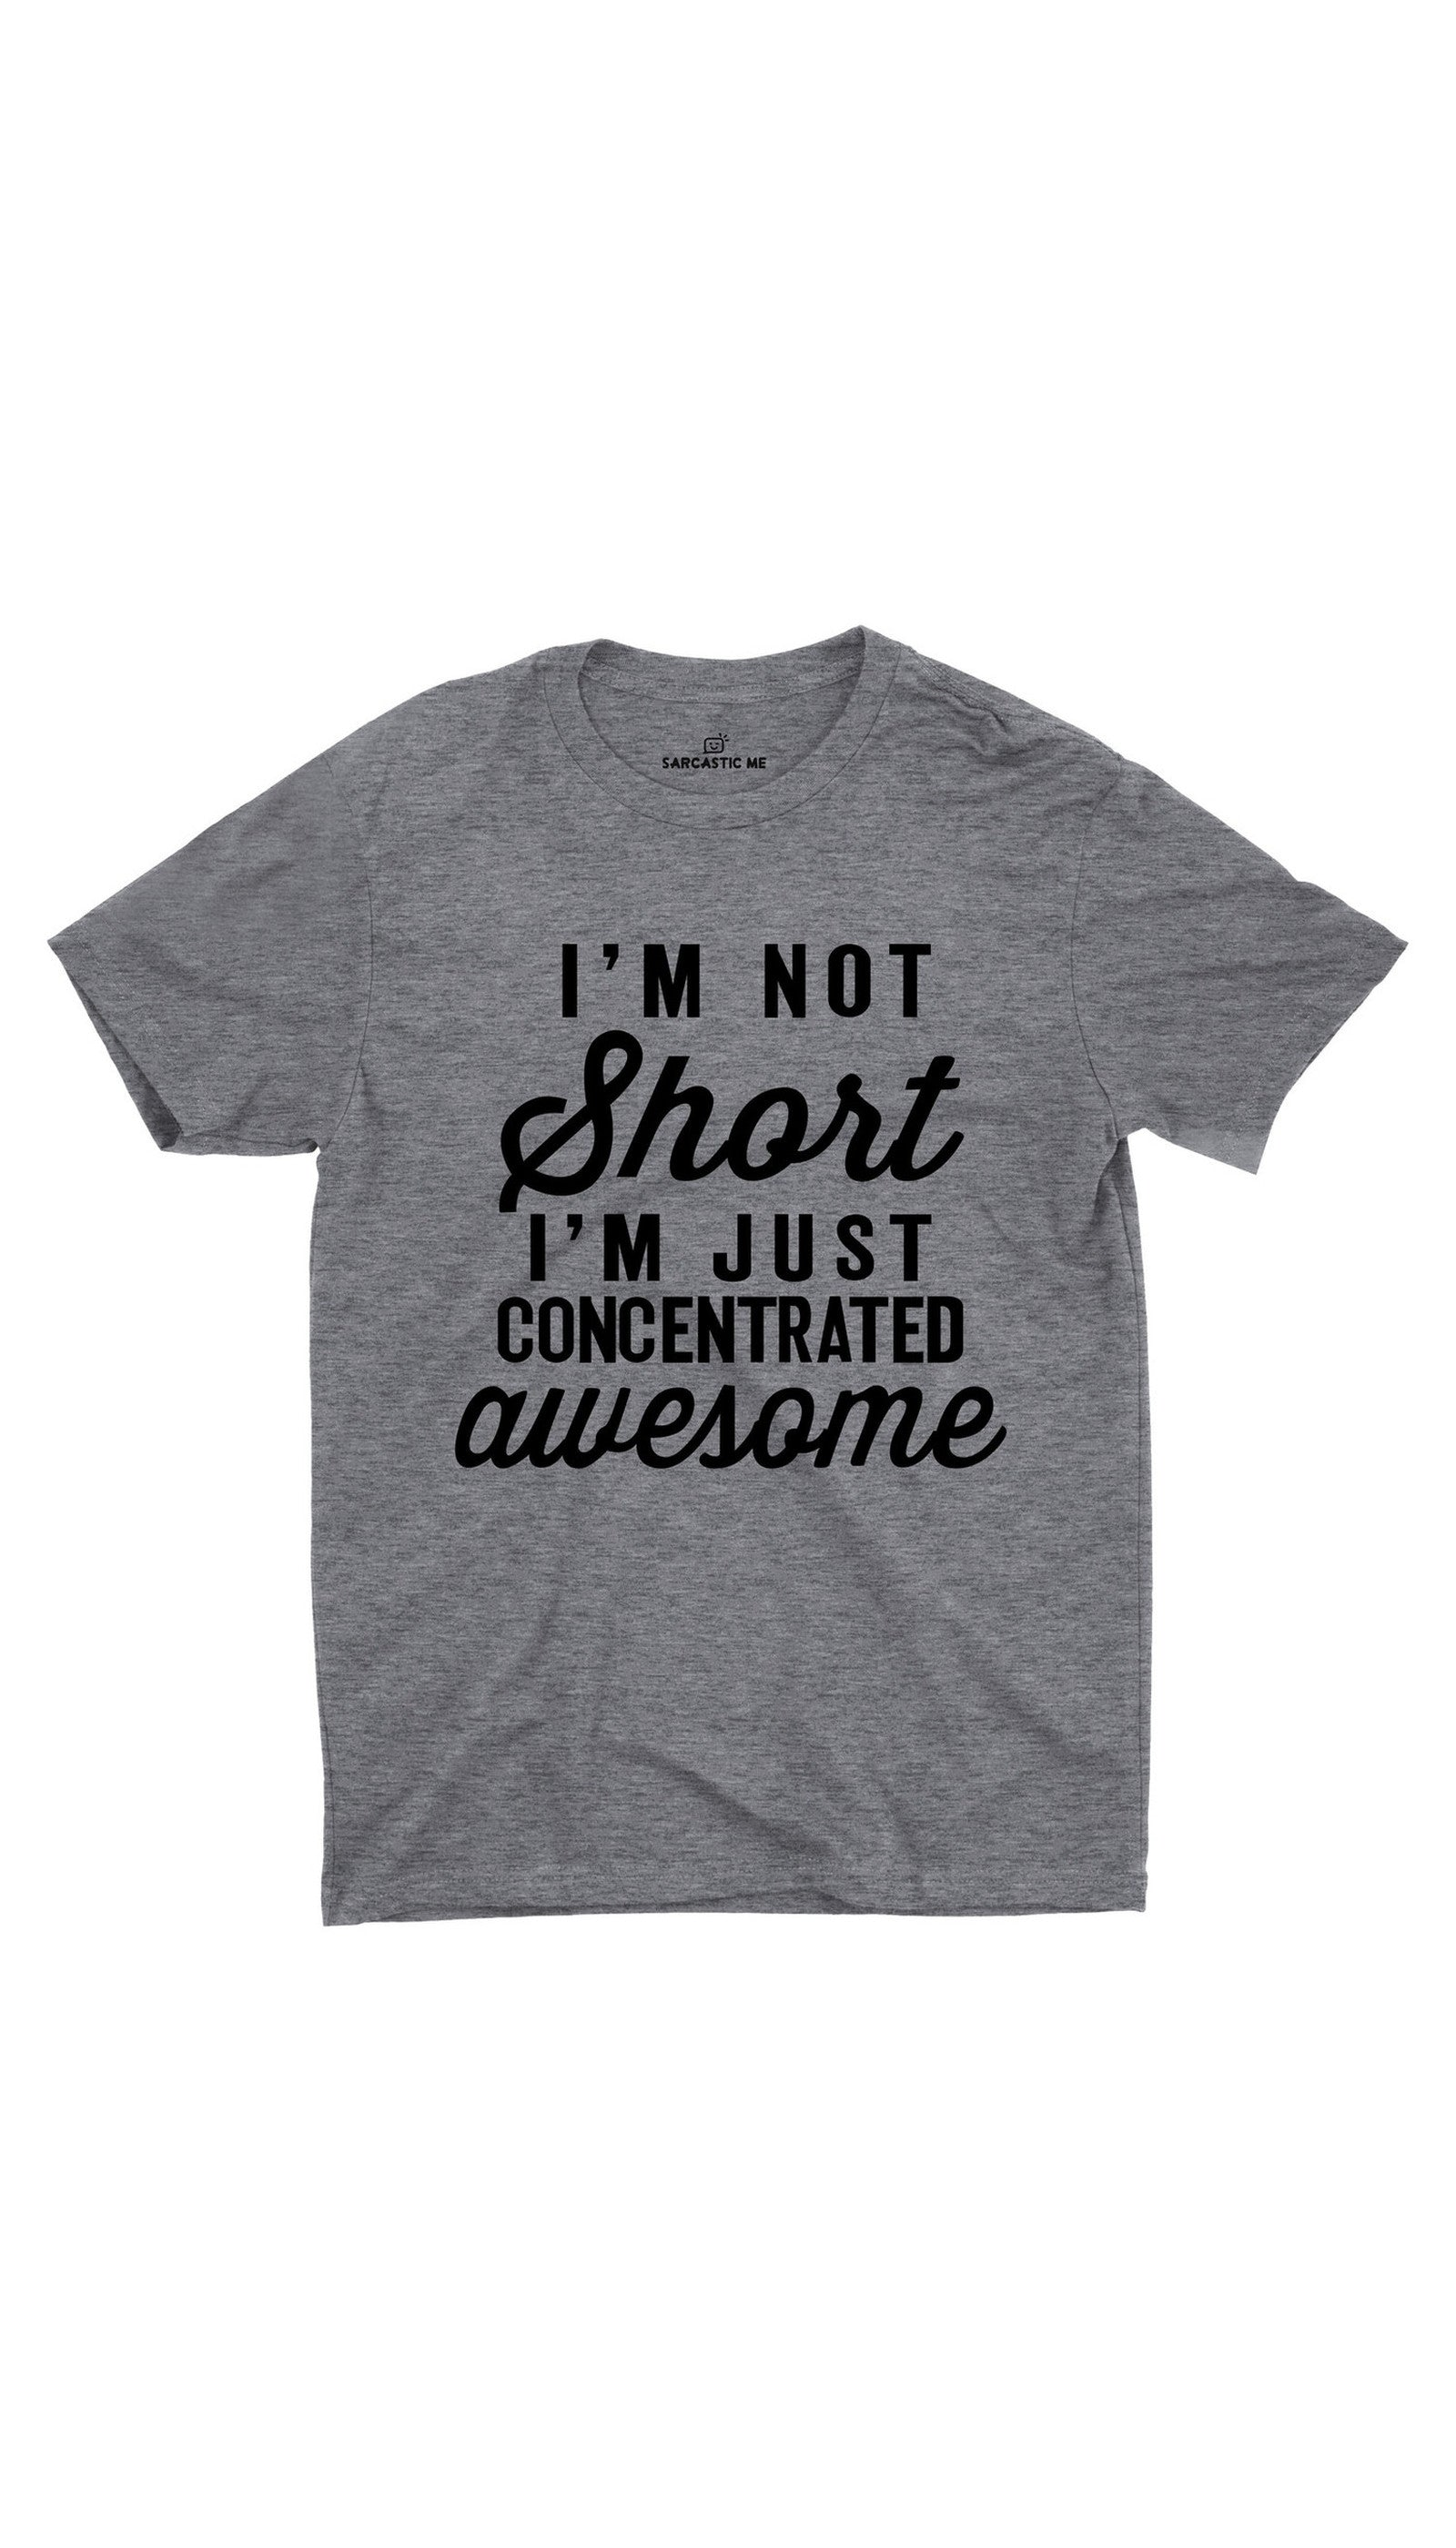 I'm Not Short Gray Unisex T-shirt | Sarcastic ME